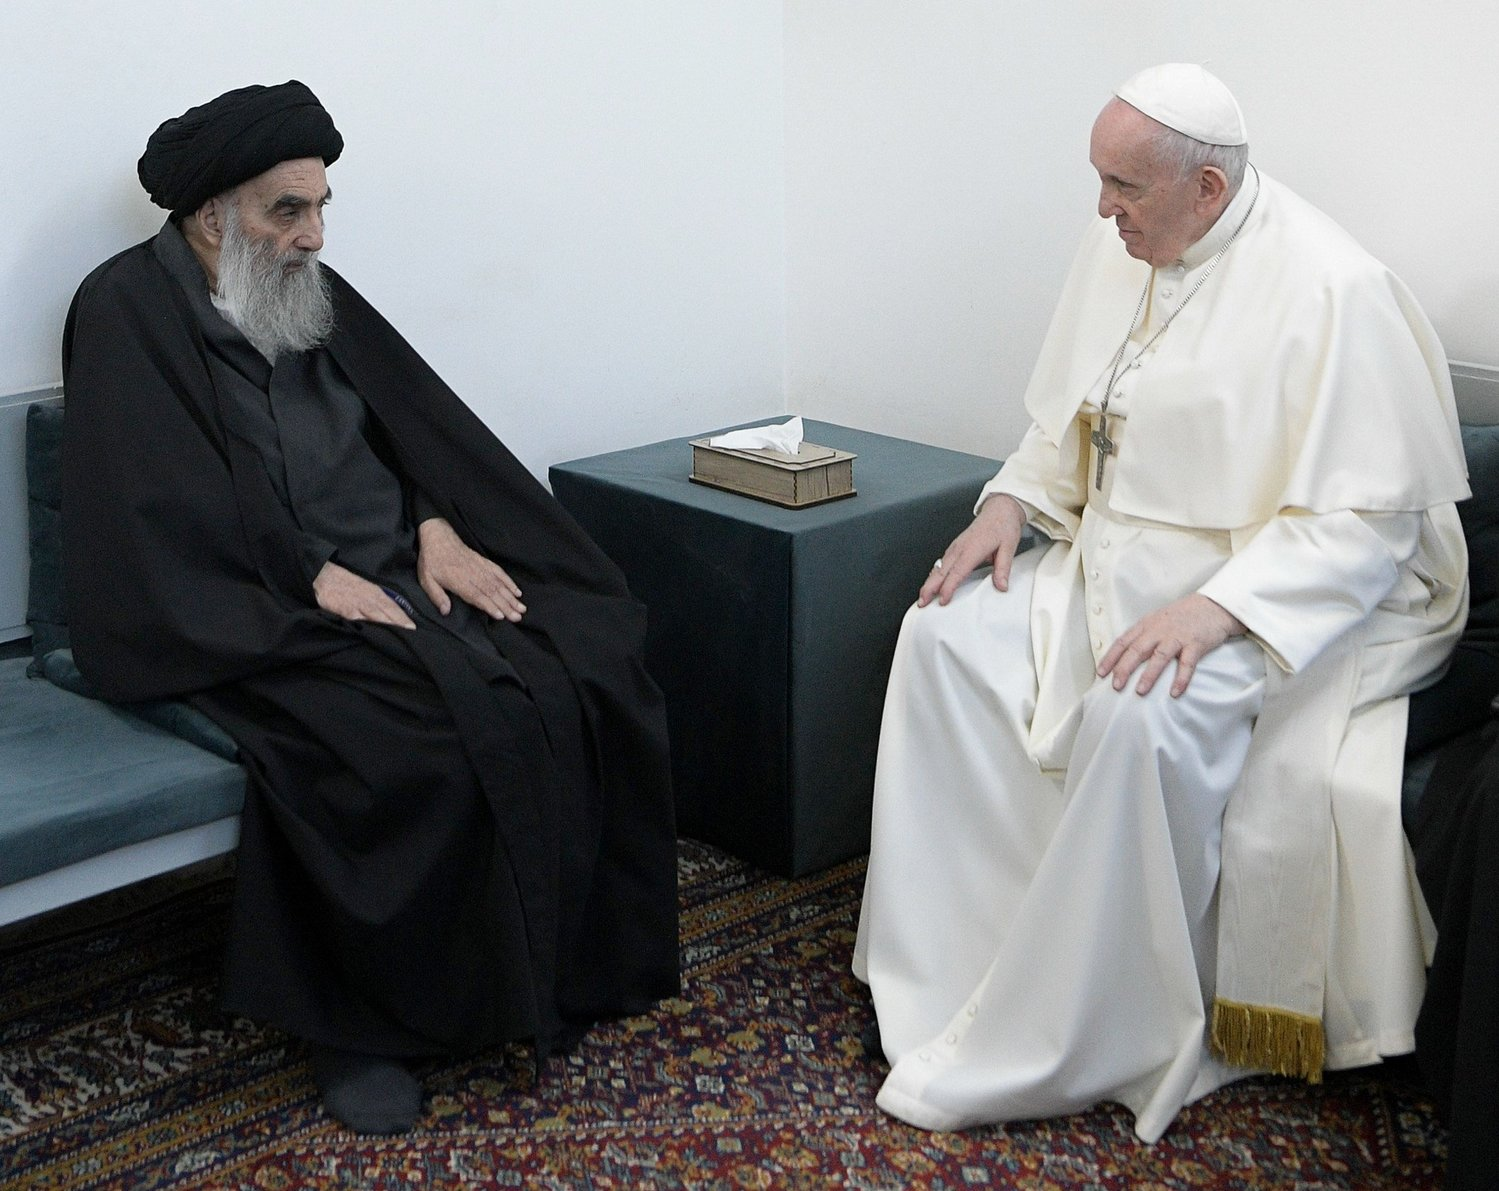 Pope Francis and Ayatollah Ali al-Sistani, one of Shiite Islam's most authoritative figures, meet during a courtesy visit in Najaf, Iraq, March 6, 2021.